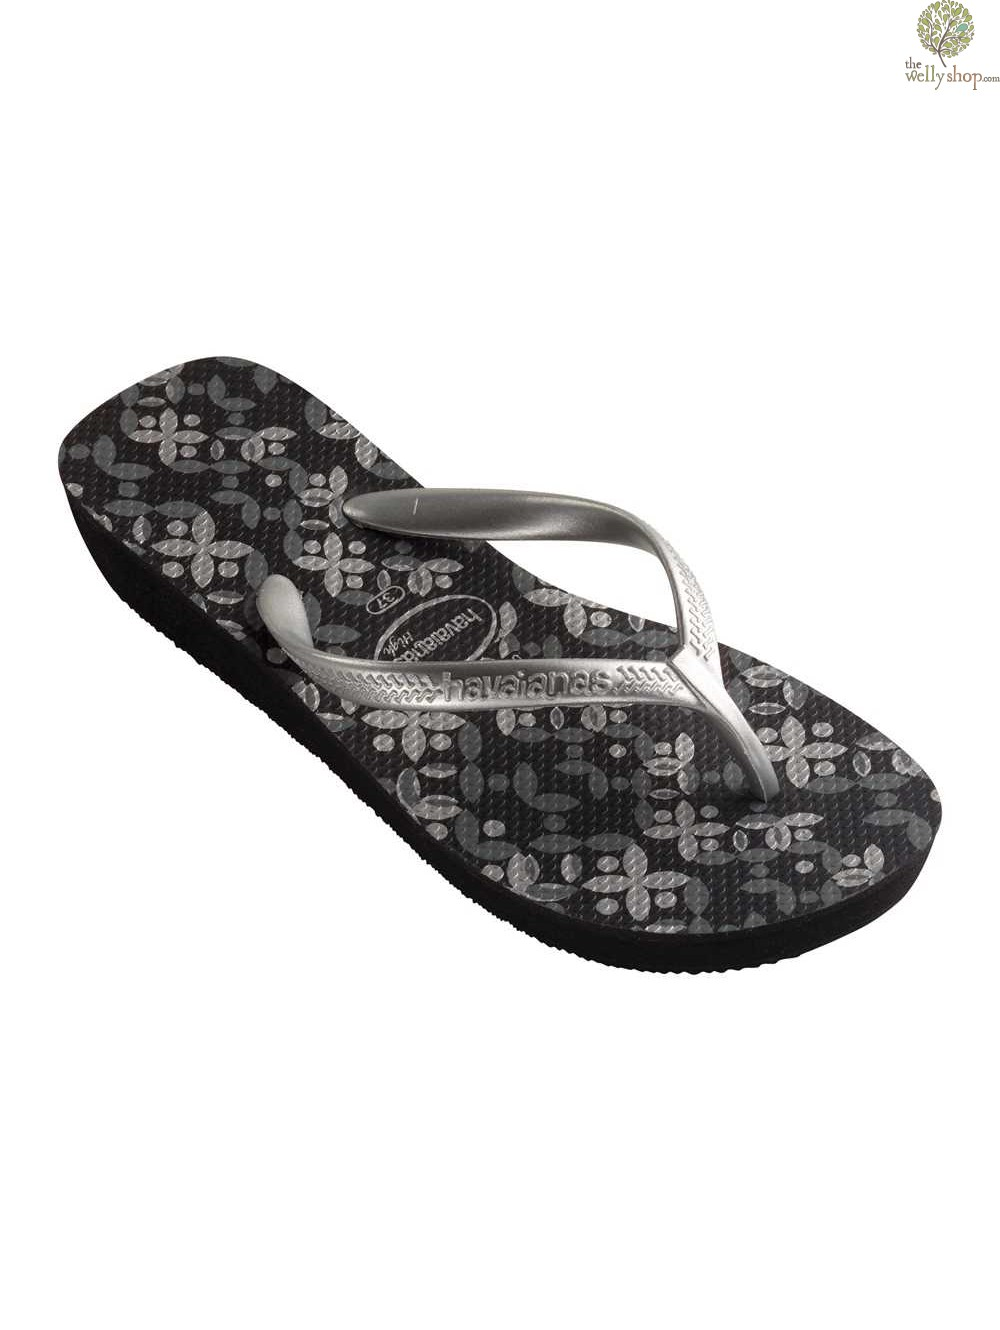 717abe4a8 ... HAVAIANAS HIGH LIGHT FLIP FLOPS WITH HEIGHT (AVAILABLE IN UK SIZES EU37  - EU41). HAVAIANAS ...